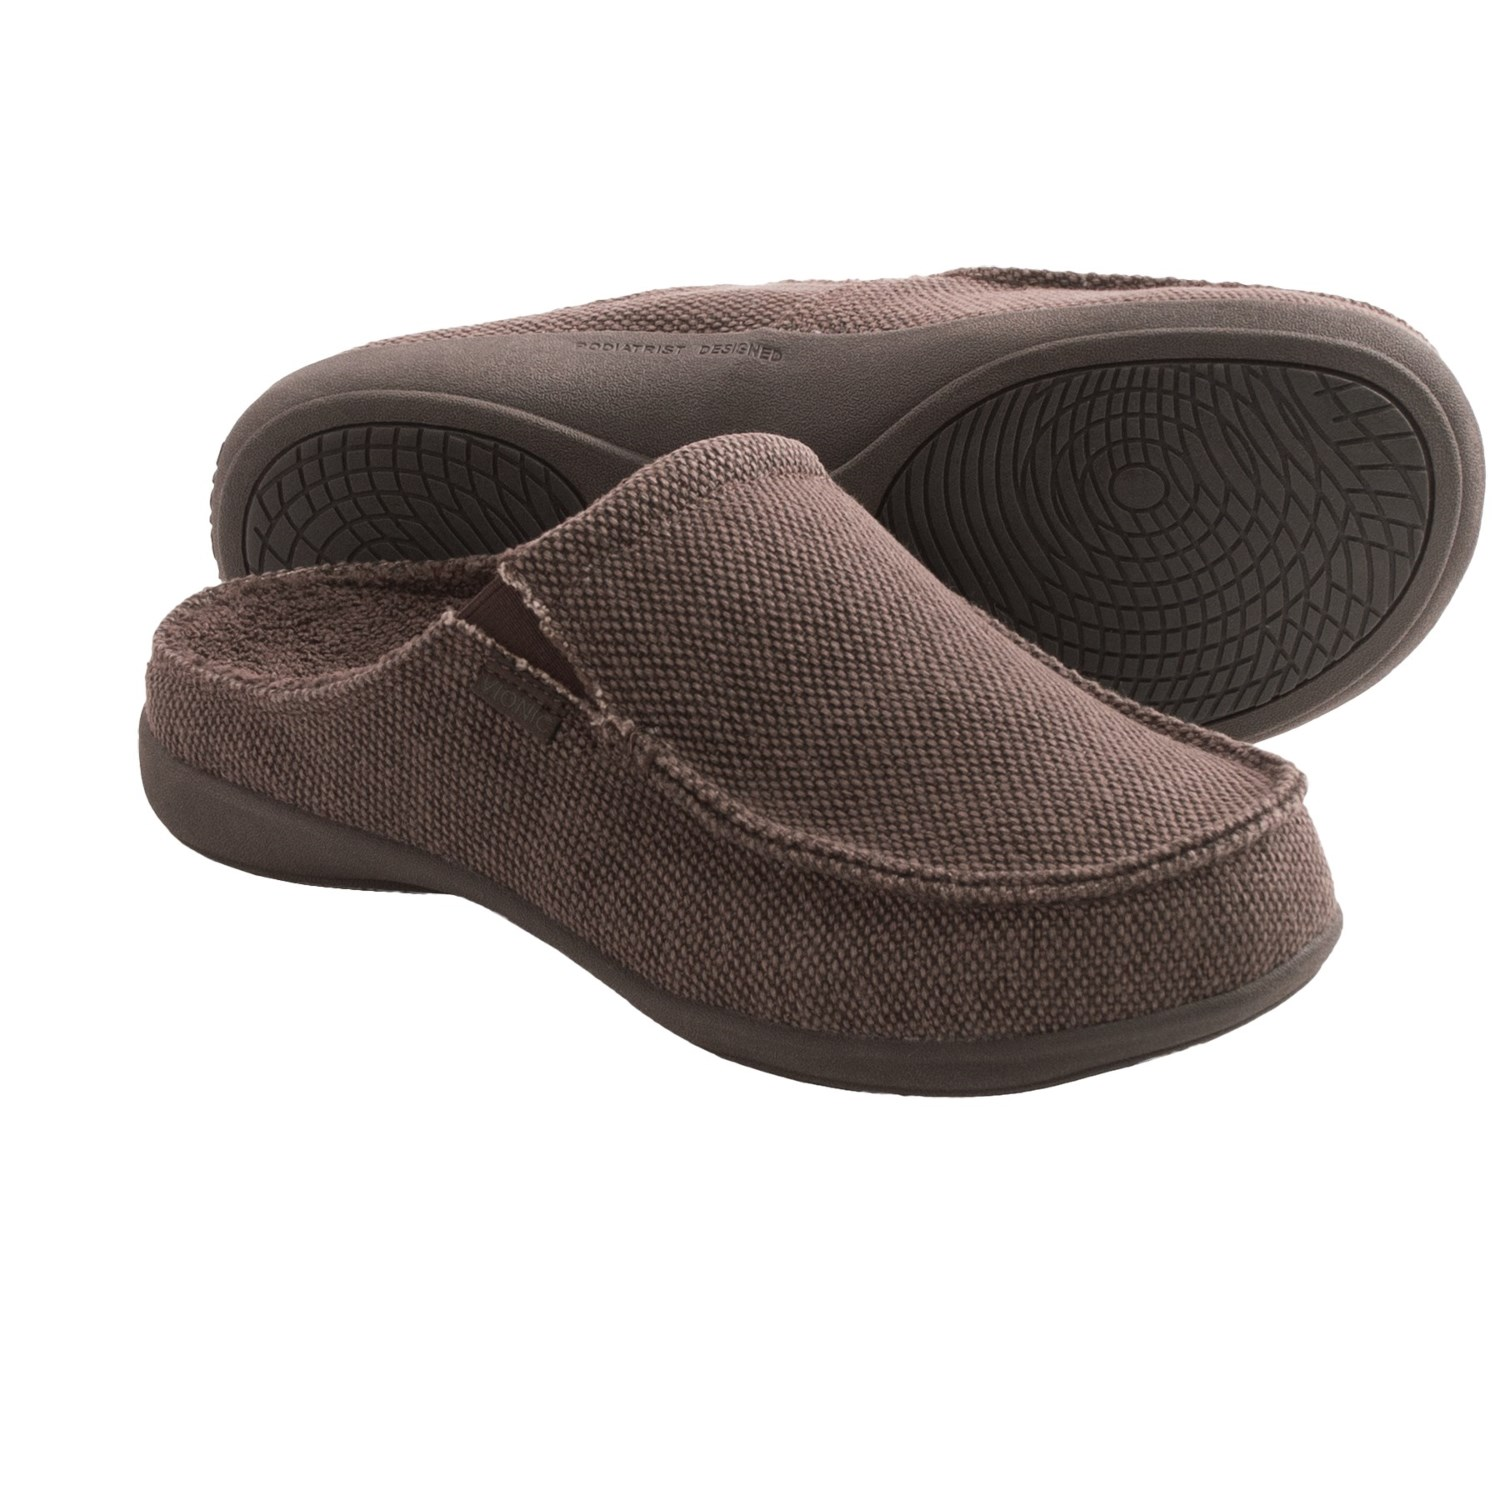 Designed with Vionic technology, these slippers are the perfect blend of plush comfort and sandal chic. If you prefer closed-toe shoes, cushy, moccasin-style slippers are a great choice for year round wear.